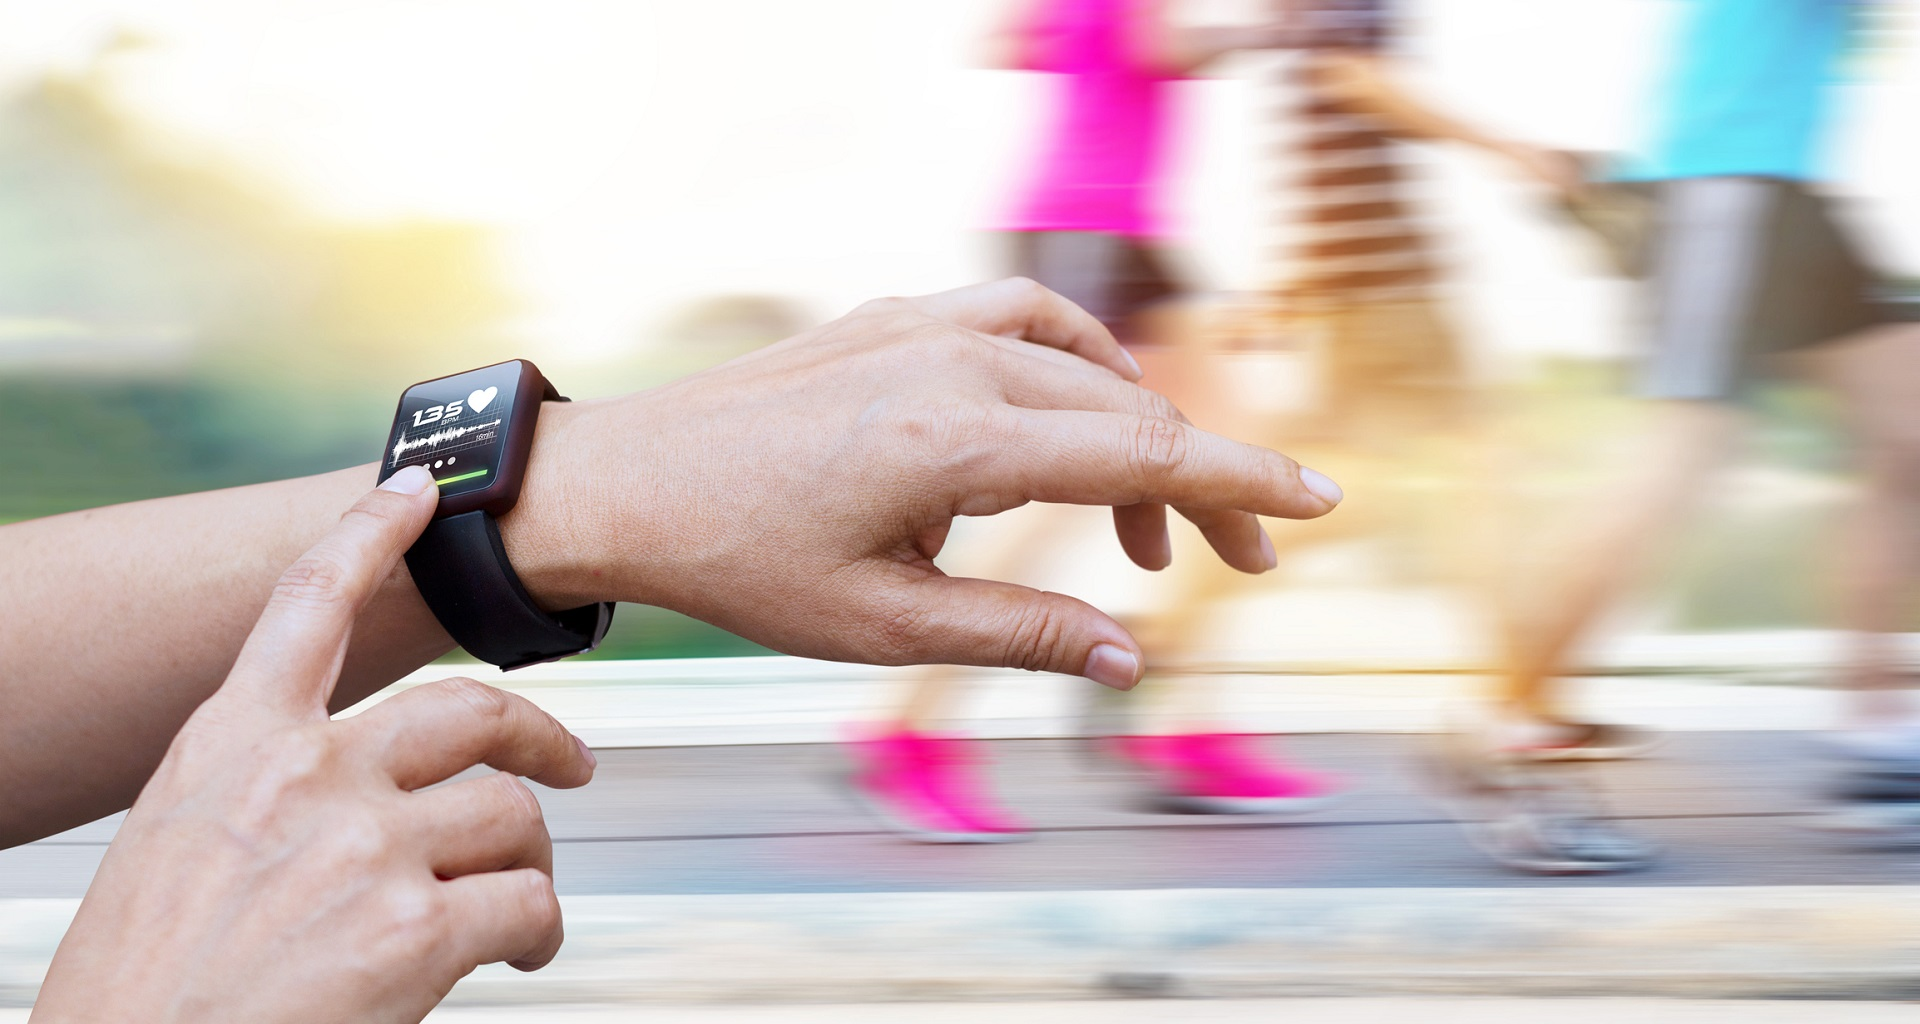 Woman checking up heart rate from smart watch